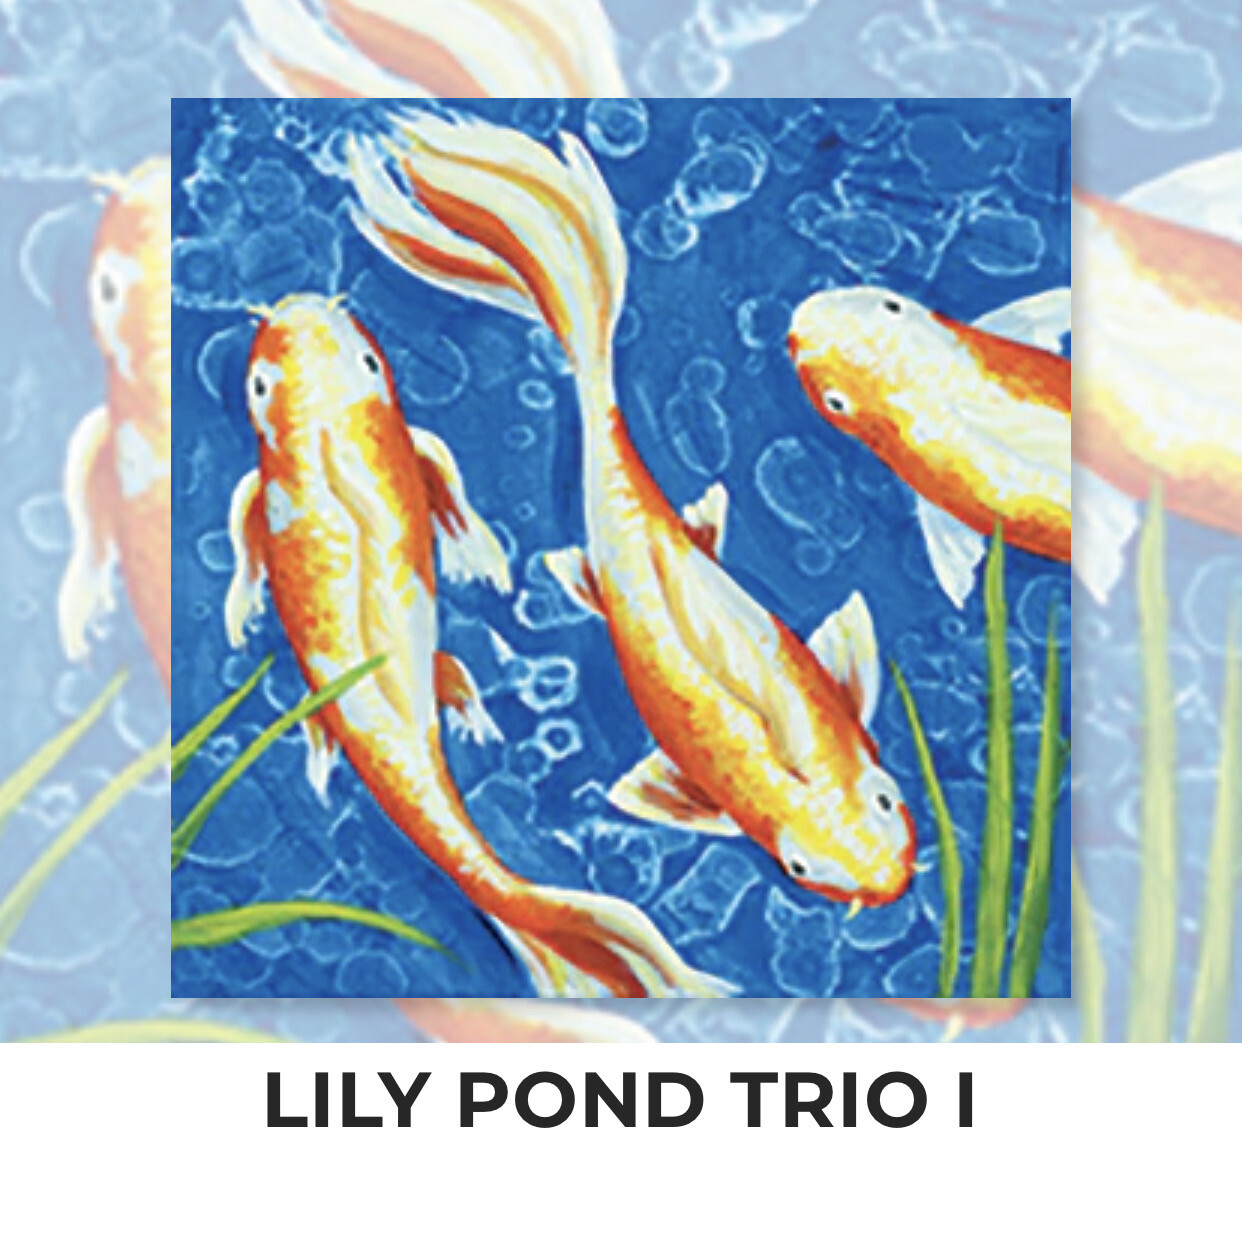 Lily Pond Trio I ADULT OR TWEEN Acrylic Paint On Canvas DIY Art Kit